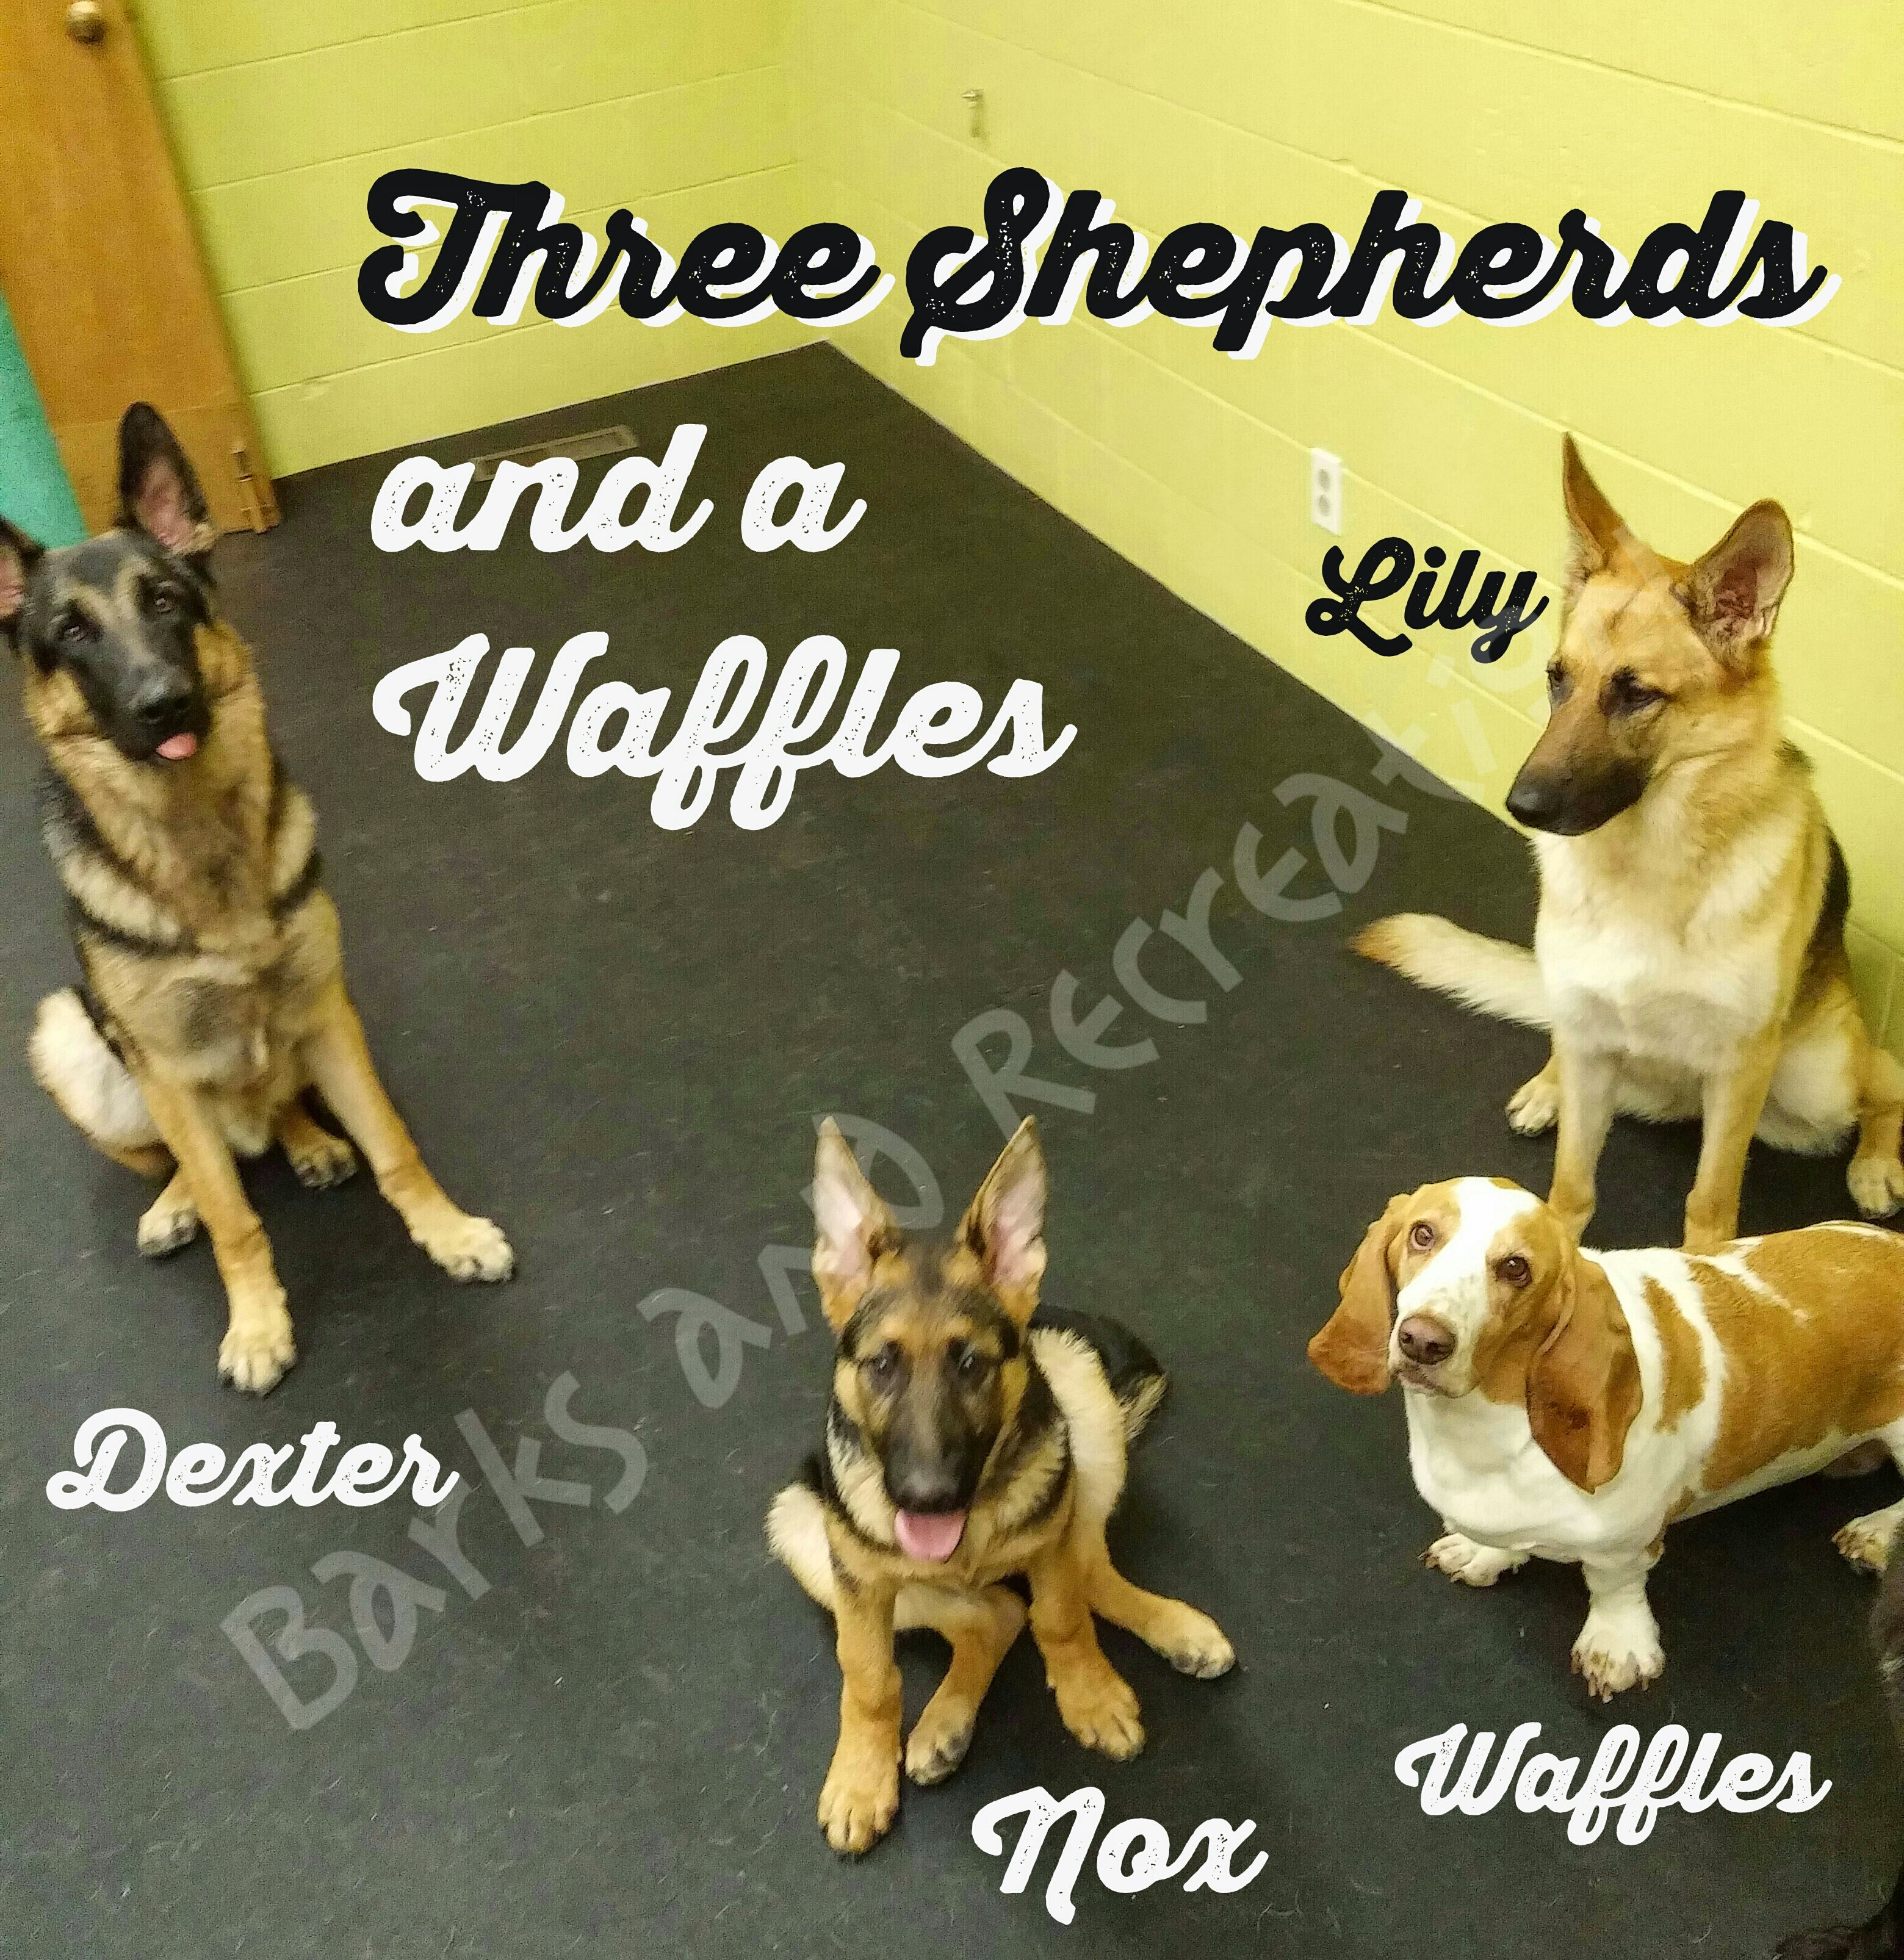 Three Shepherds and a Waffles